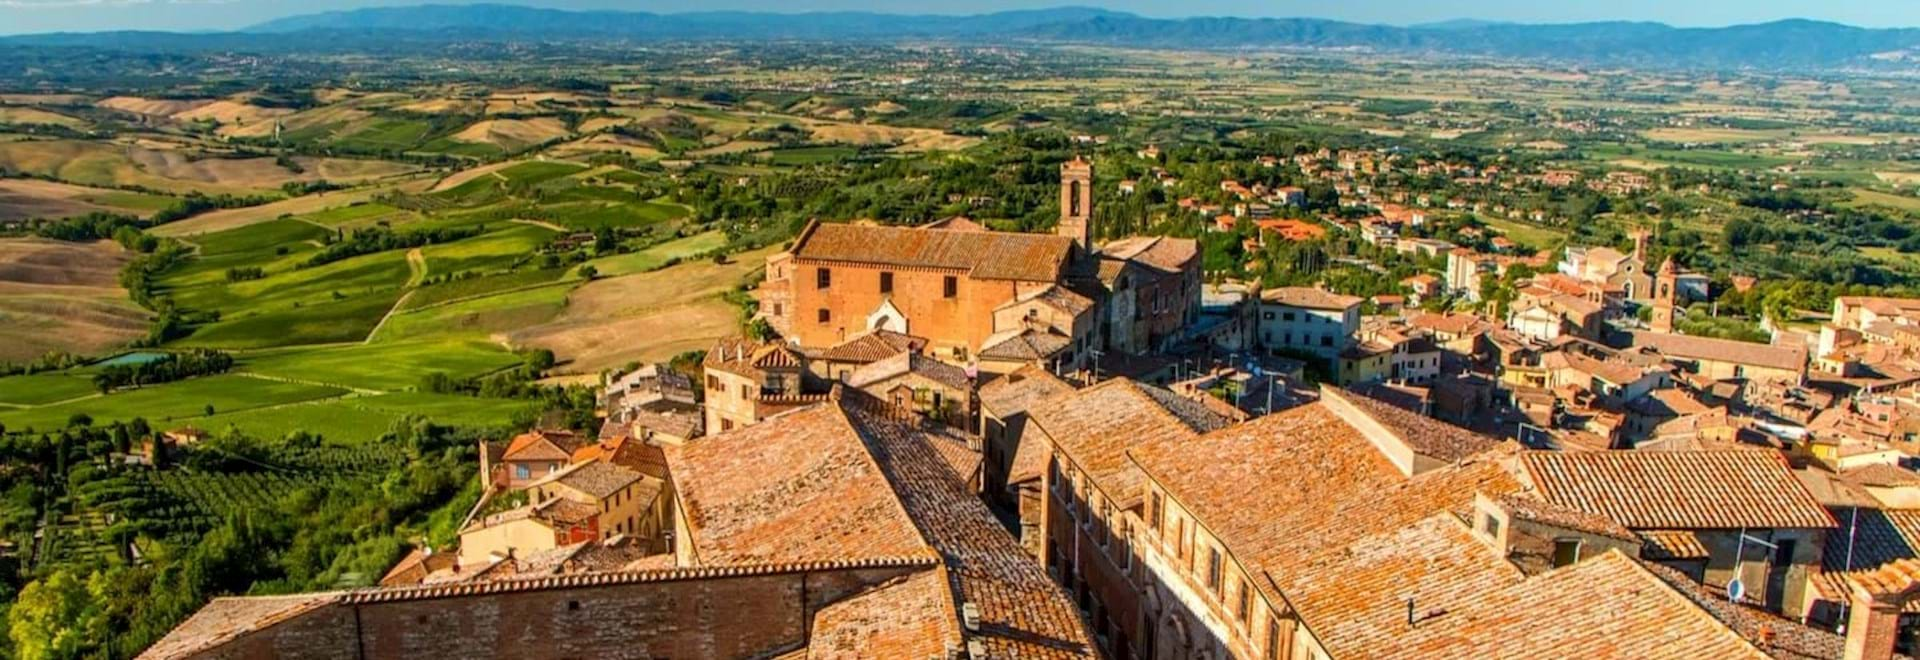 Beautiful view of the roofs in Moltepulciano, Italy